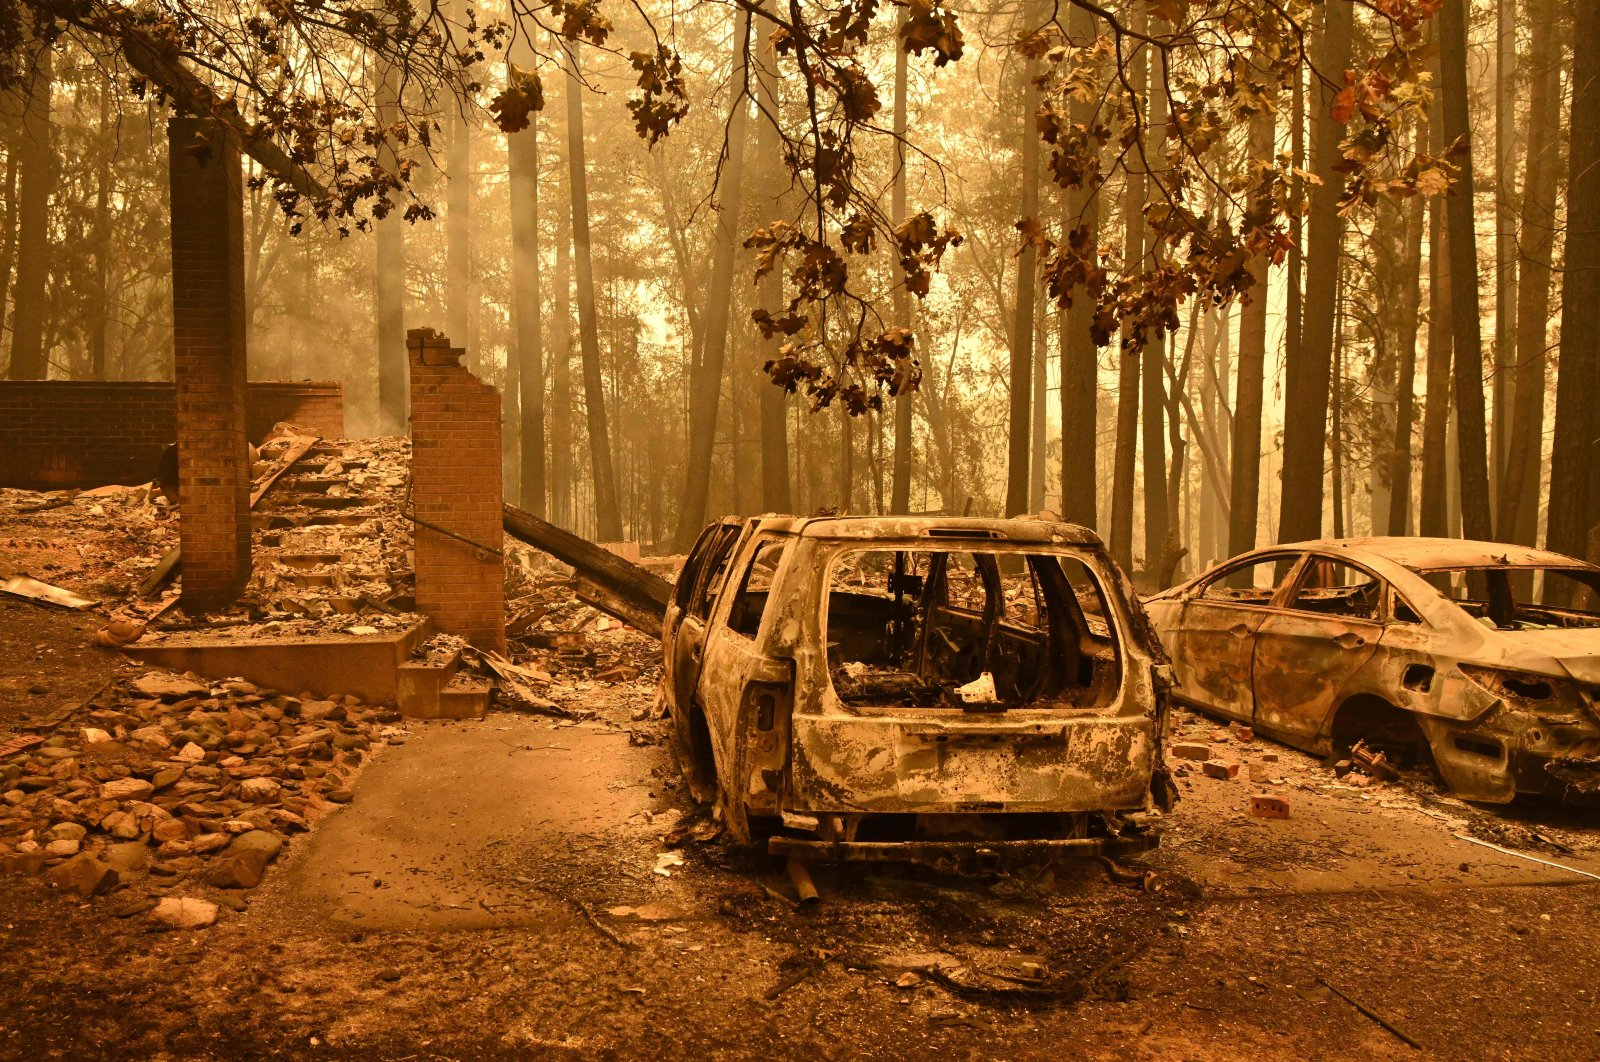 Burned vehicles smolder at a property during the Dixie fire in the Indian Falls area of unincorporated Plumas County, California, U.S., July 25, 2021. (AFP Photo)